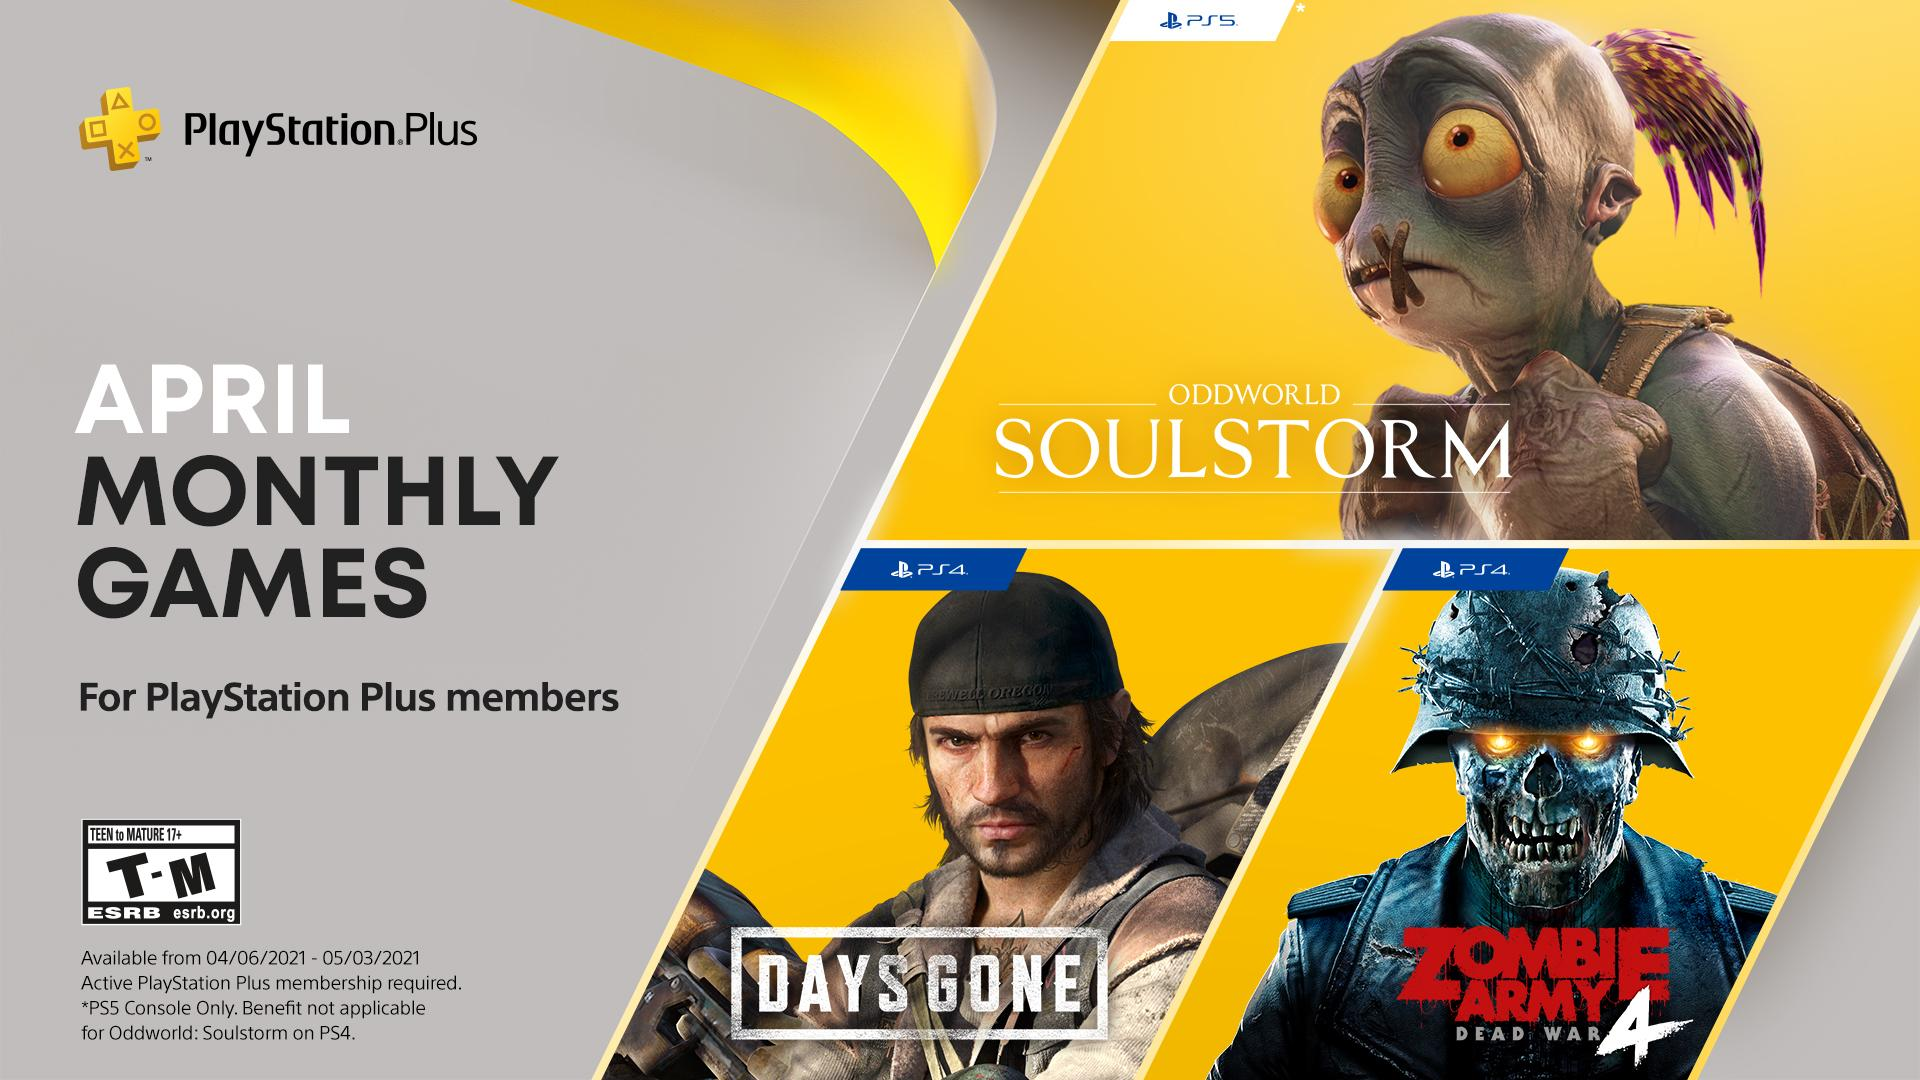 These are the PlayStation Plus games of April 2021